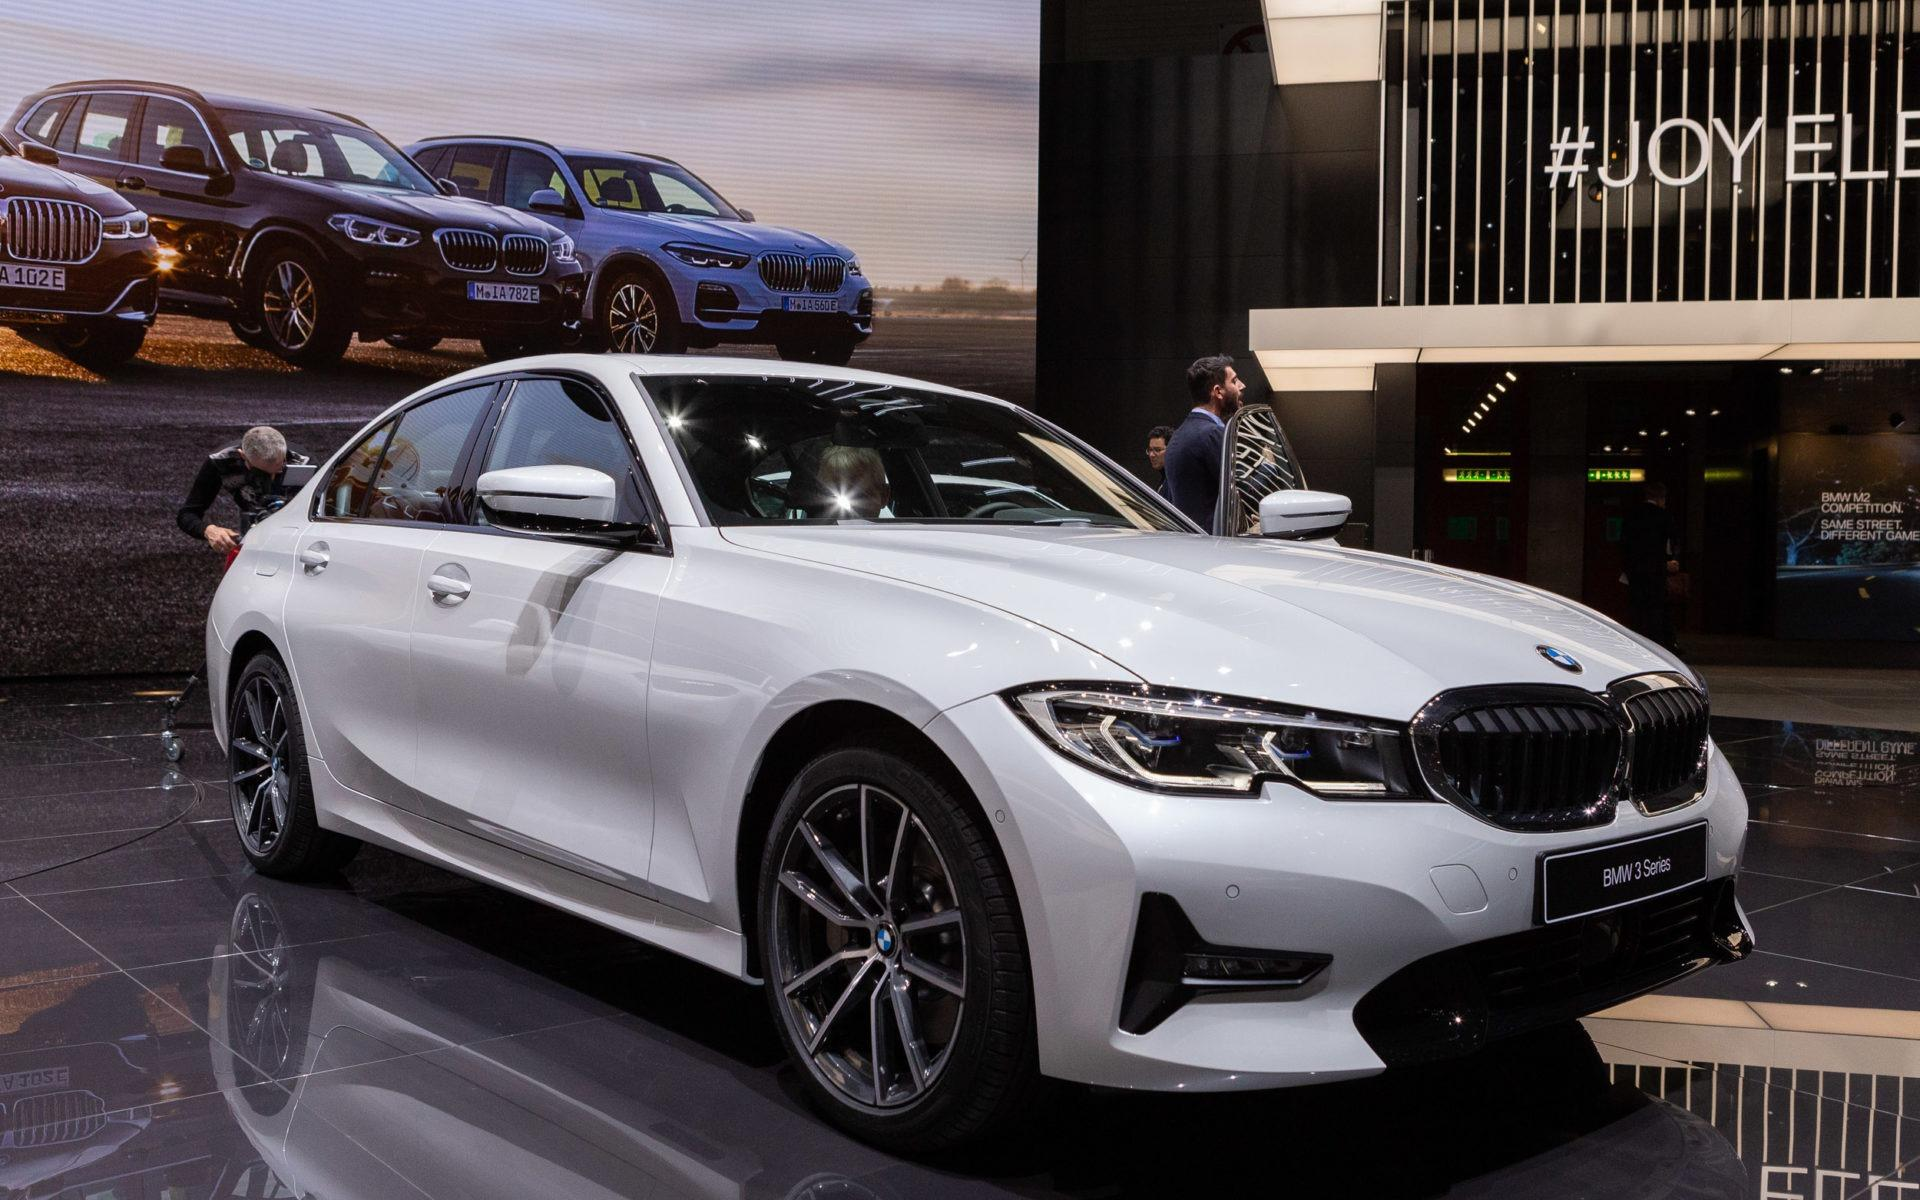 New BMW X3, 3 Series Plug-in Hybrid Models Introduced in Geneva ...